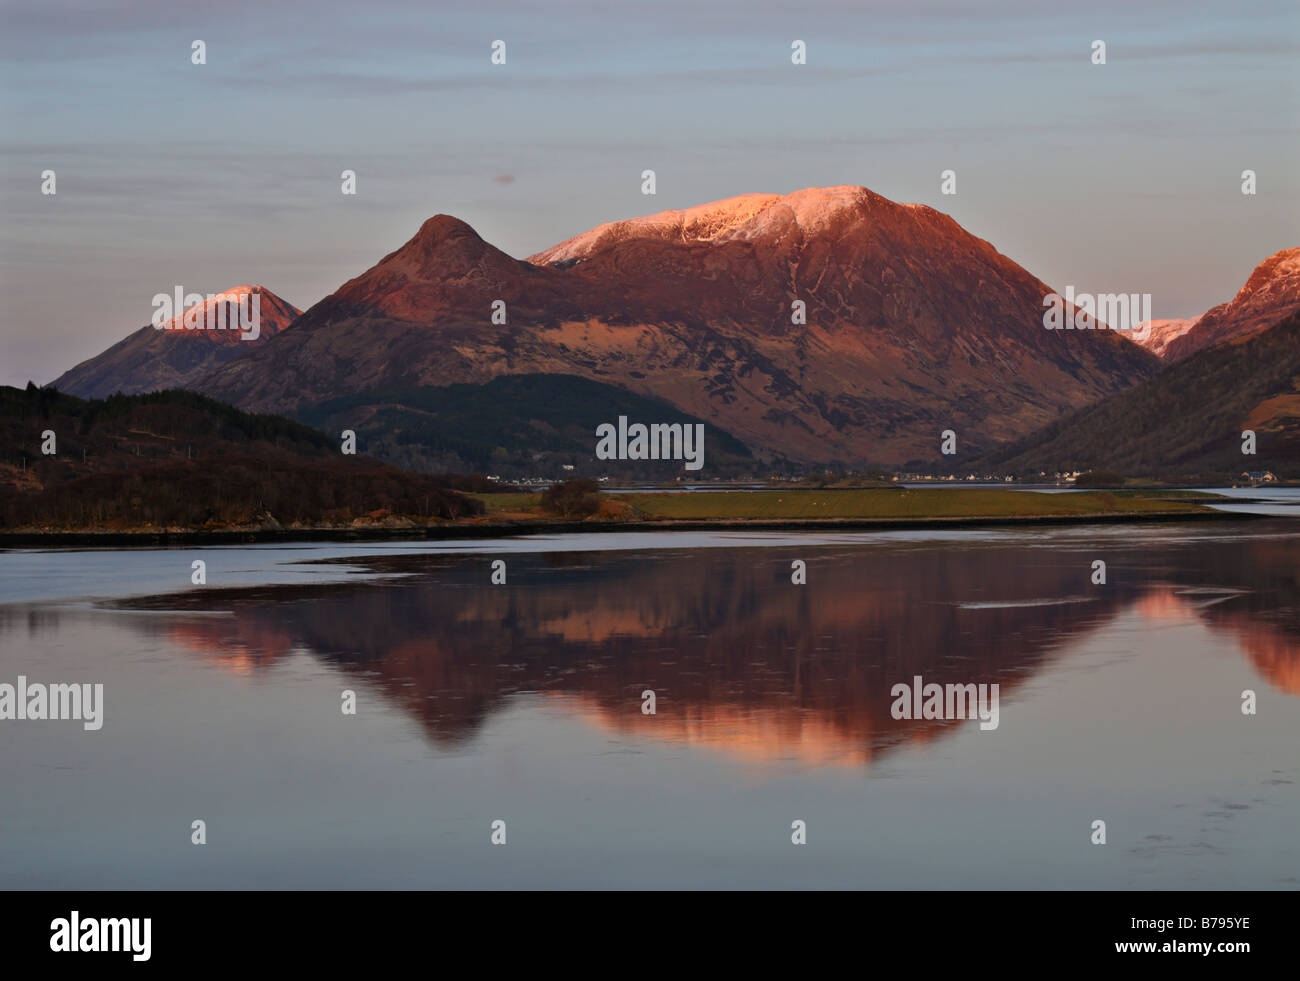 Warm evening light on the calm waters of Loch Leven and the snow capped Glencoe hills Glencoe Argyll western Scotland - Stock Image